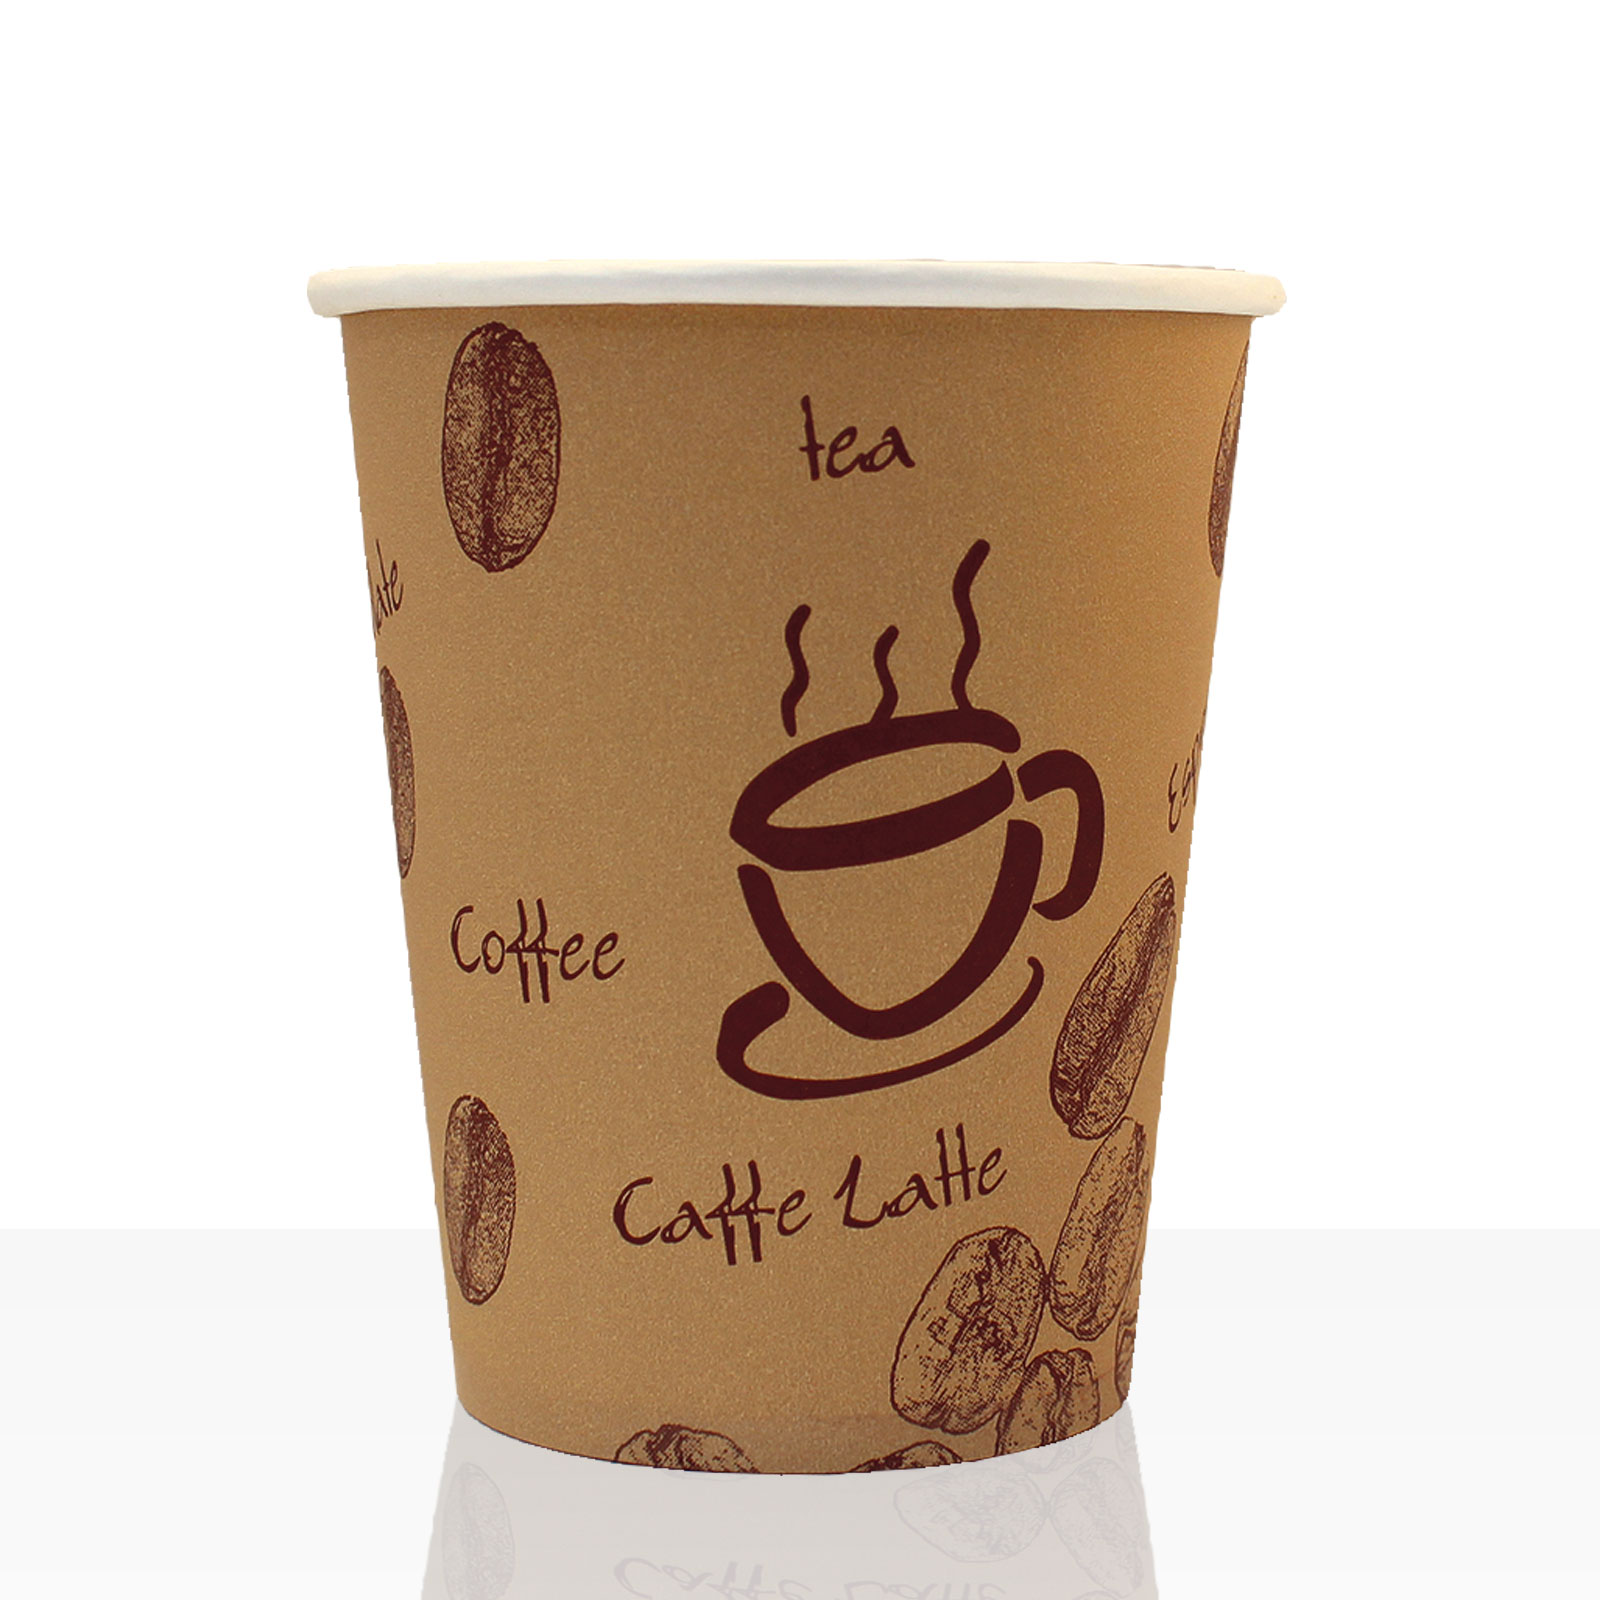 Coffee to go Becher aus Hartpapier 0,3l, 100Stk, Pappbecher, Kaffeebecher to go